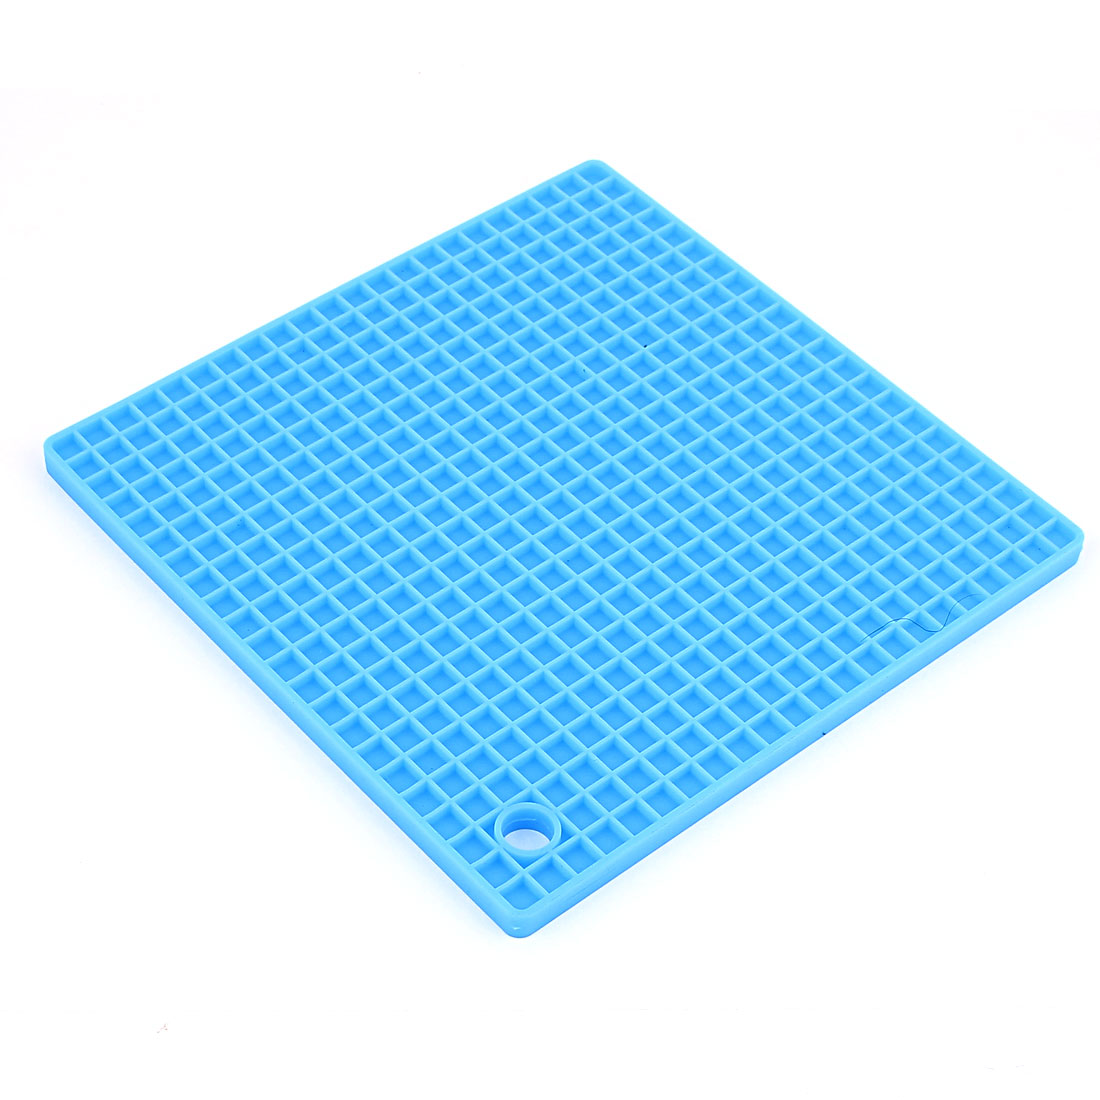 Silicone Square Shaped Antislip Heat Resistant Pad Mat Light Blue